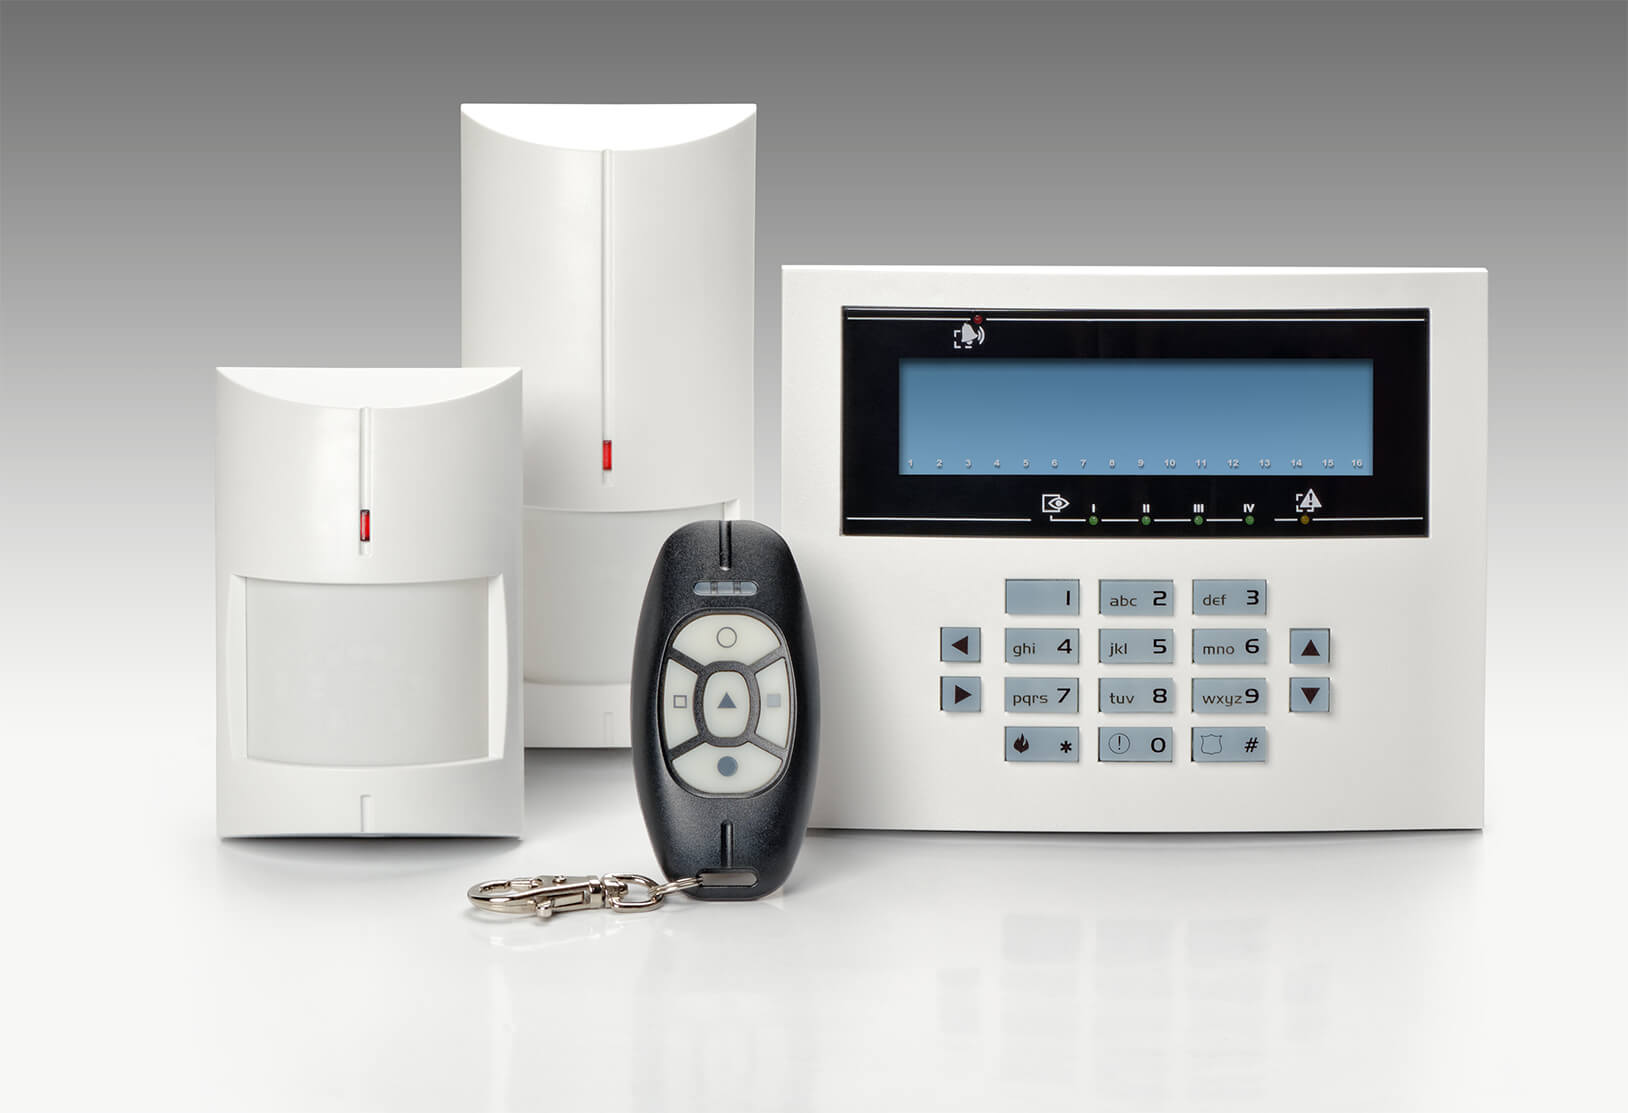 Commercial Burglar Alarms For Business in North West London  - Local North West London burglar alarm company.Call 02078872244 - Dedicated to Safety & Security. Companies, shops and homes ..